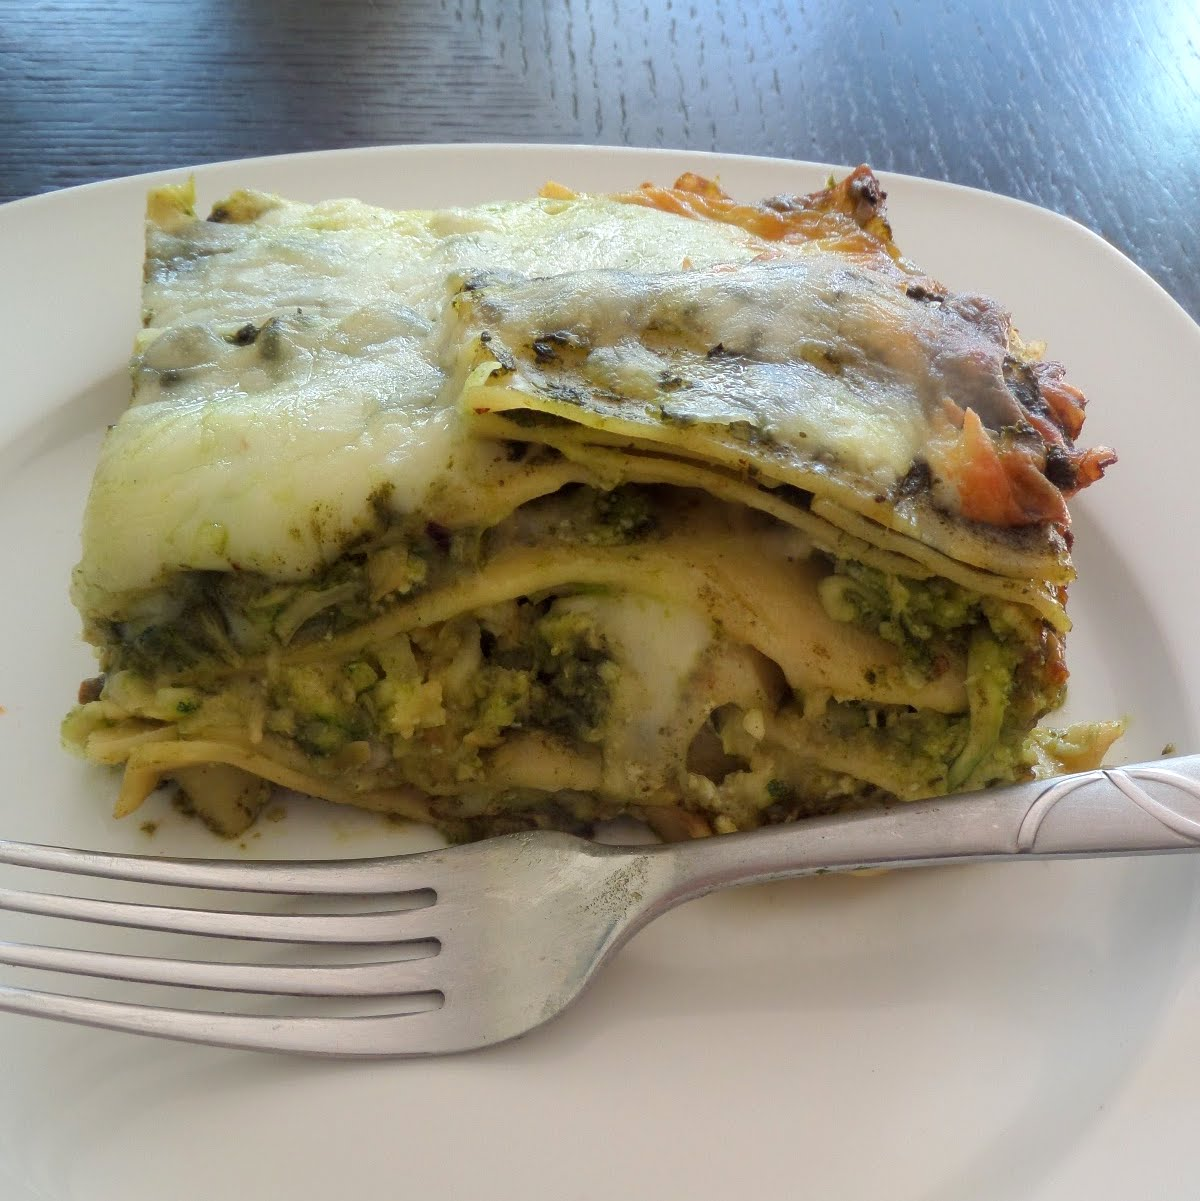 Green Lasagna:  A meatless lasagna layered with green vegetables, cheese, chickpeas, and pesto.